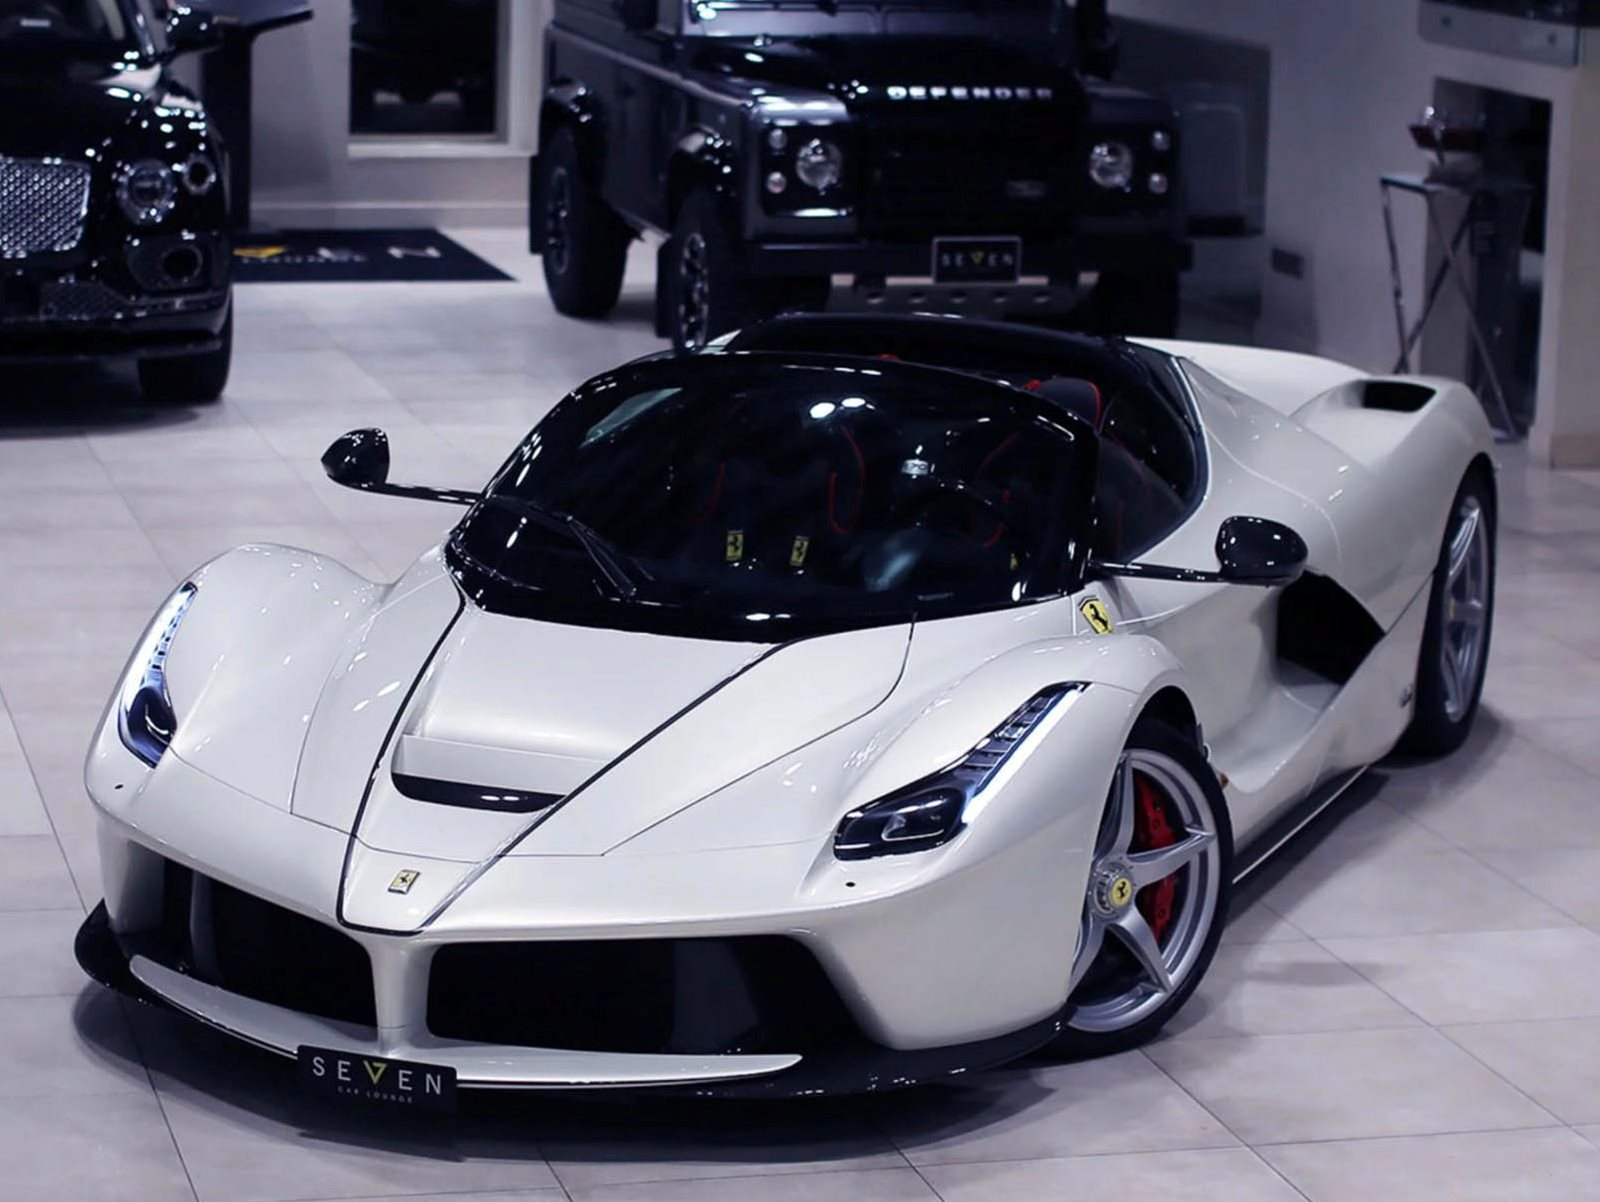 This Stunning White Laferrari Aperta Has Only Driven 60 Miles Carbuzz